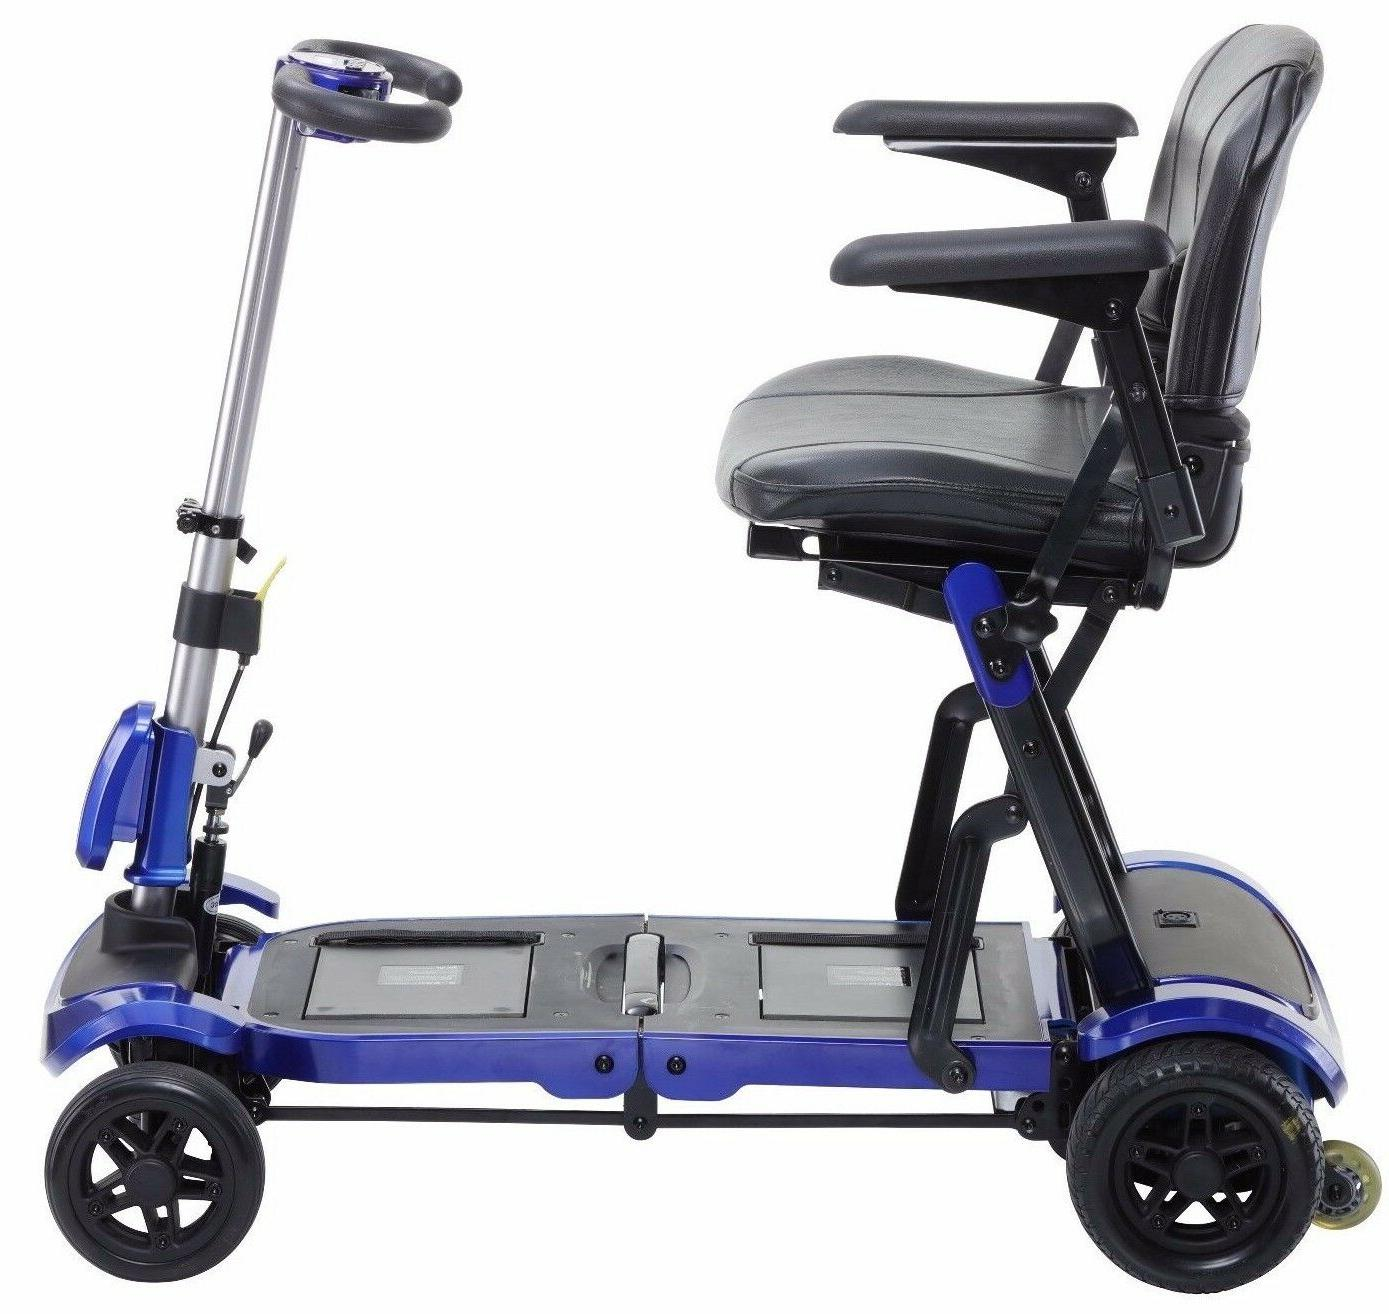 ZooMe Compact Folding Travel 4 Mobility Drive Medical